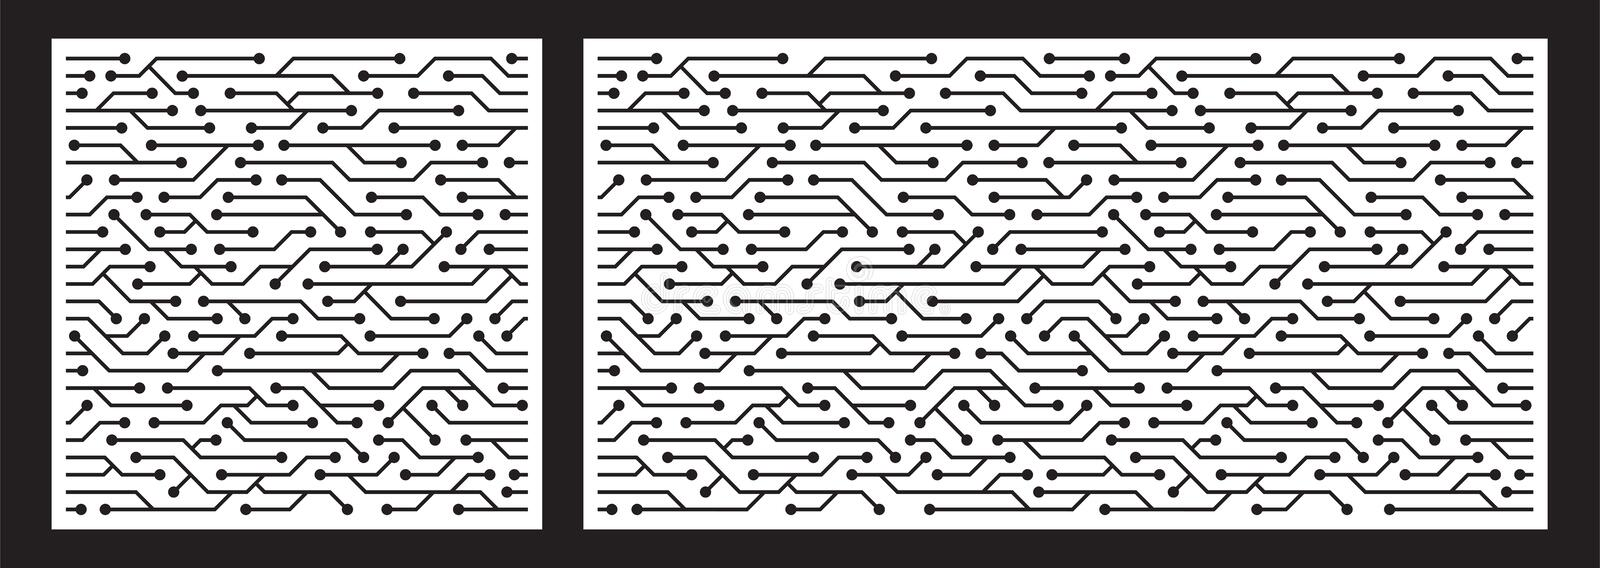 Laser cutting template for decorative panel. Abstract circuit pattern. Vector illustration. stock illustration